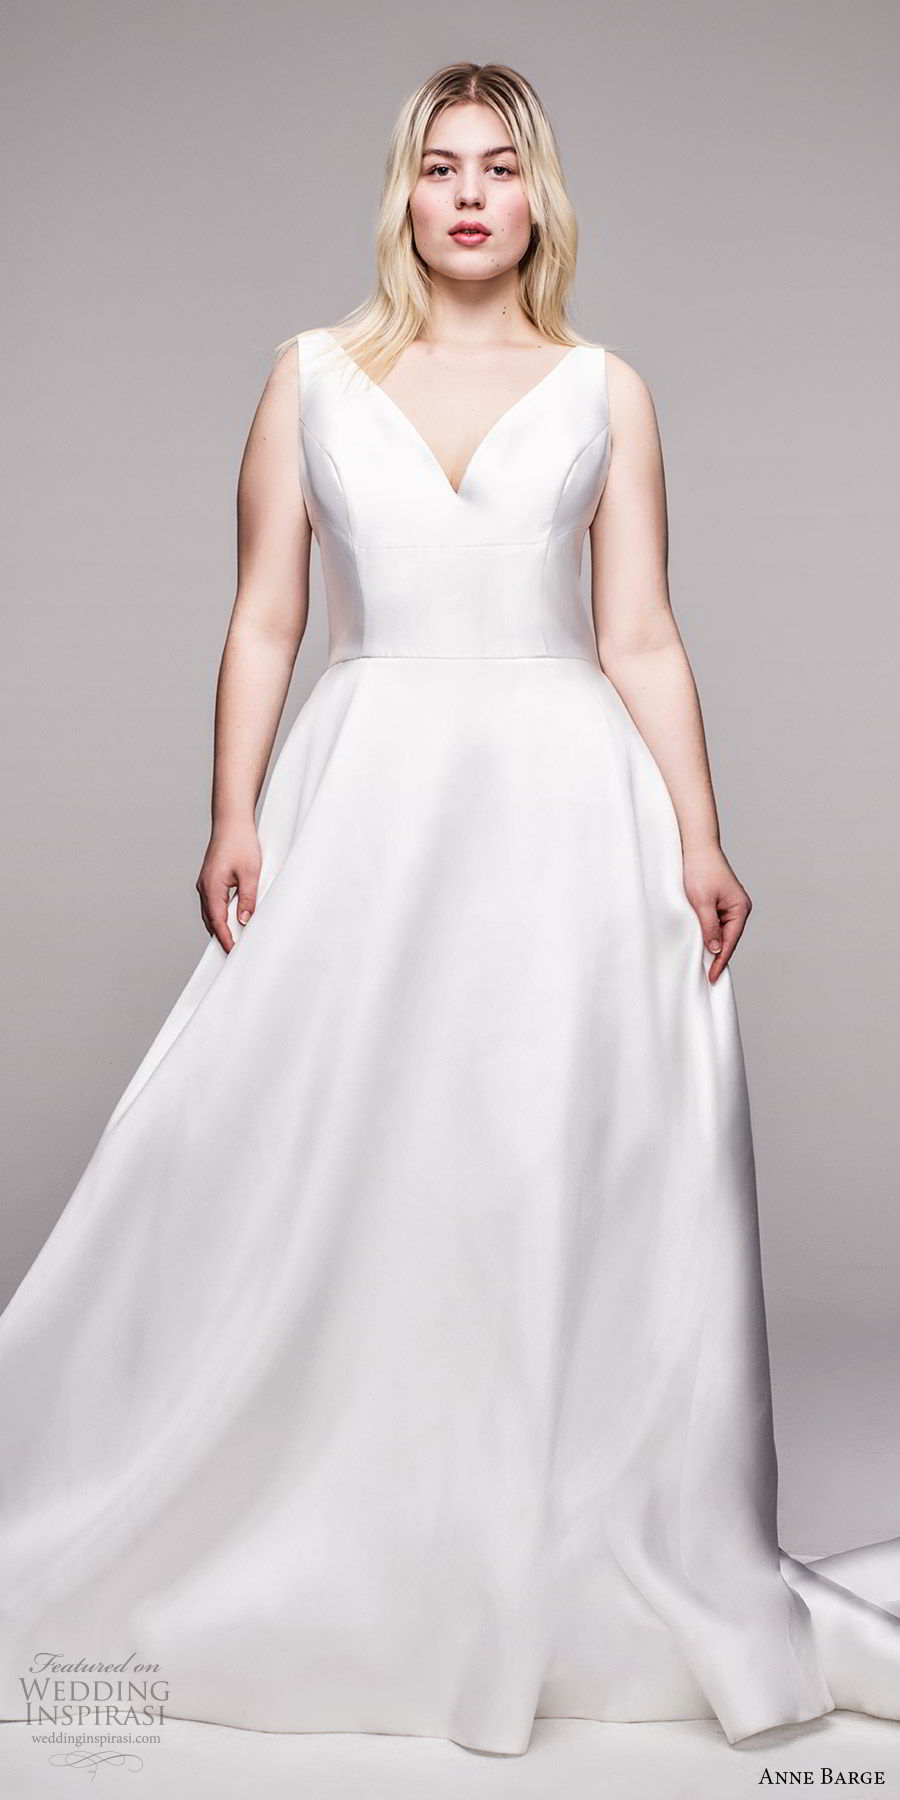 anne barge 2020 bridal plus size sleeveless v neckline minimally embellished a line ball gown (9) minimalist clean modern v back bow chapel train mv